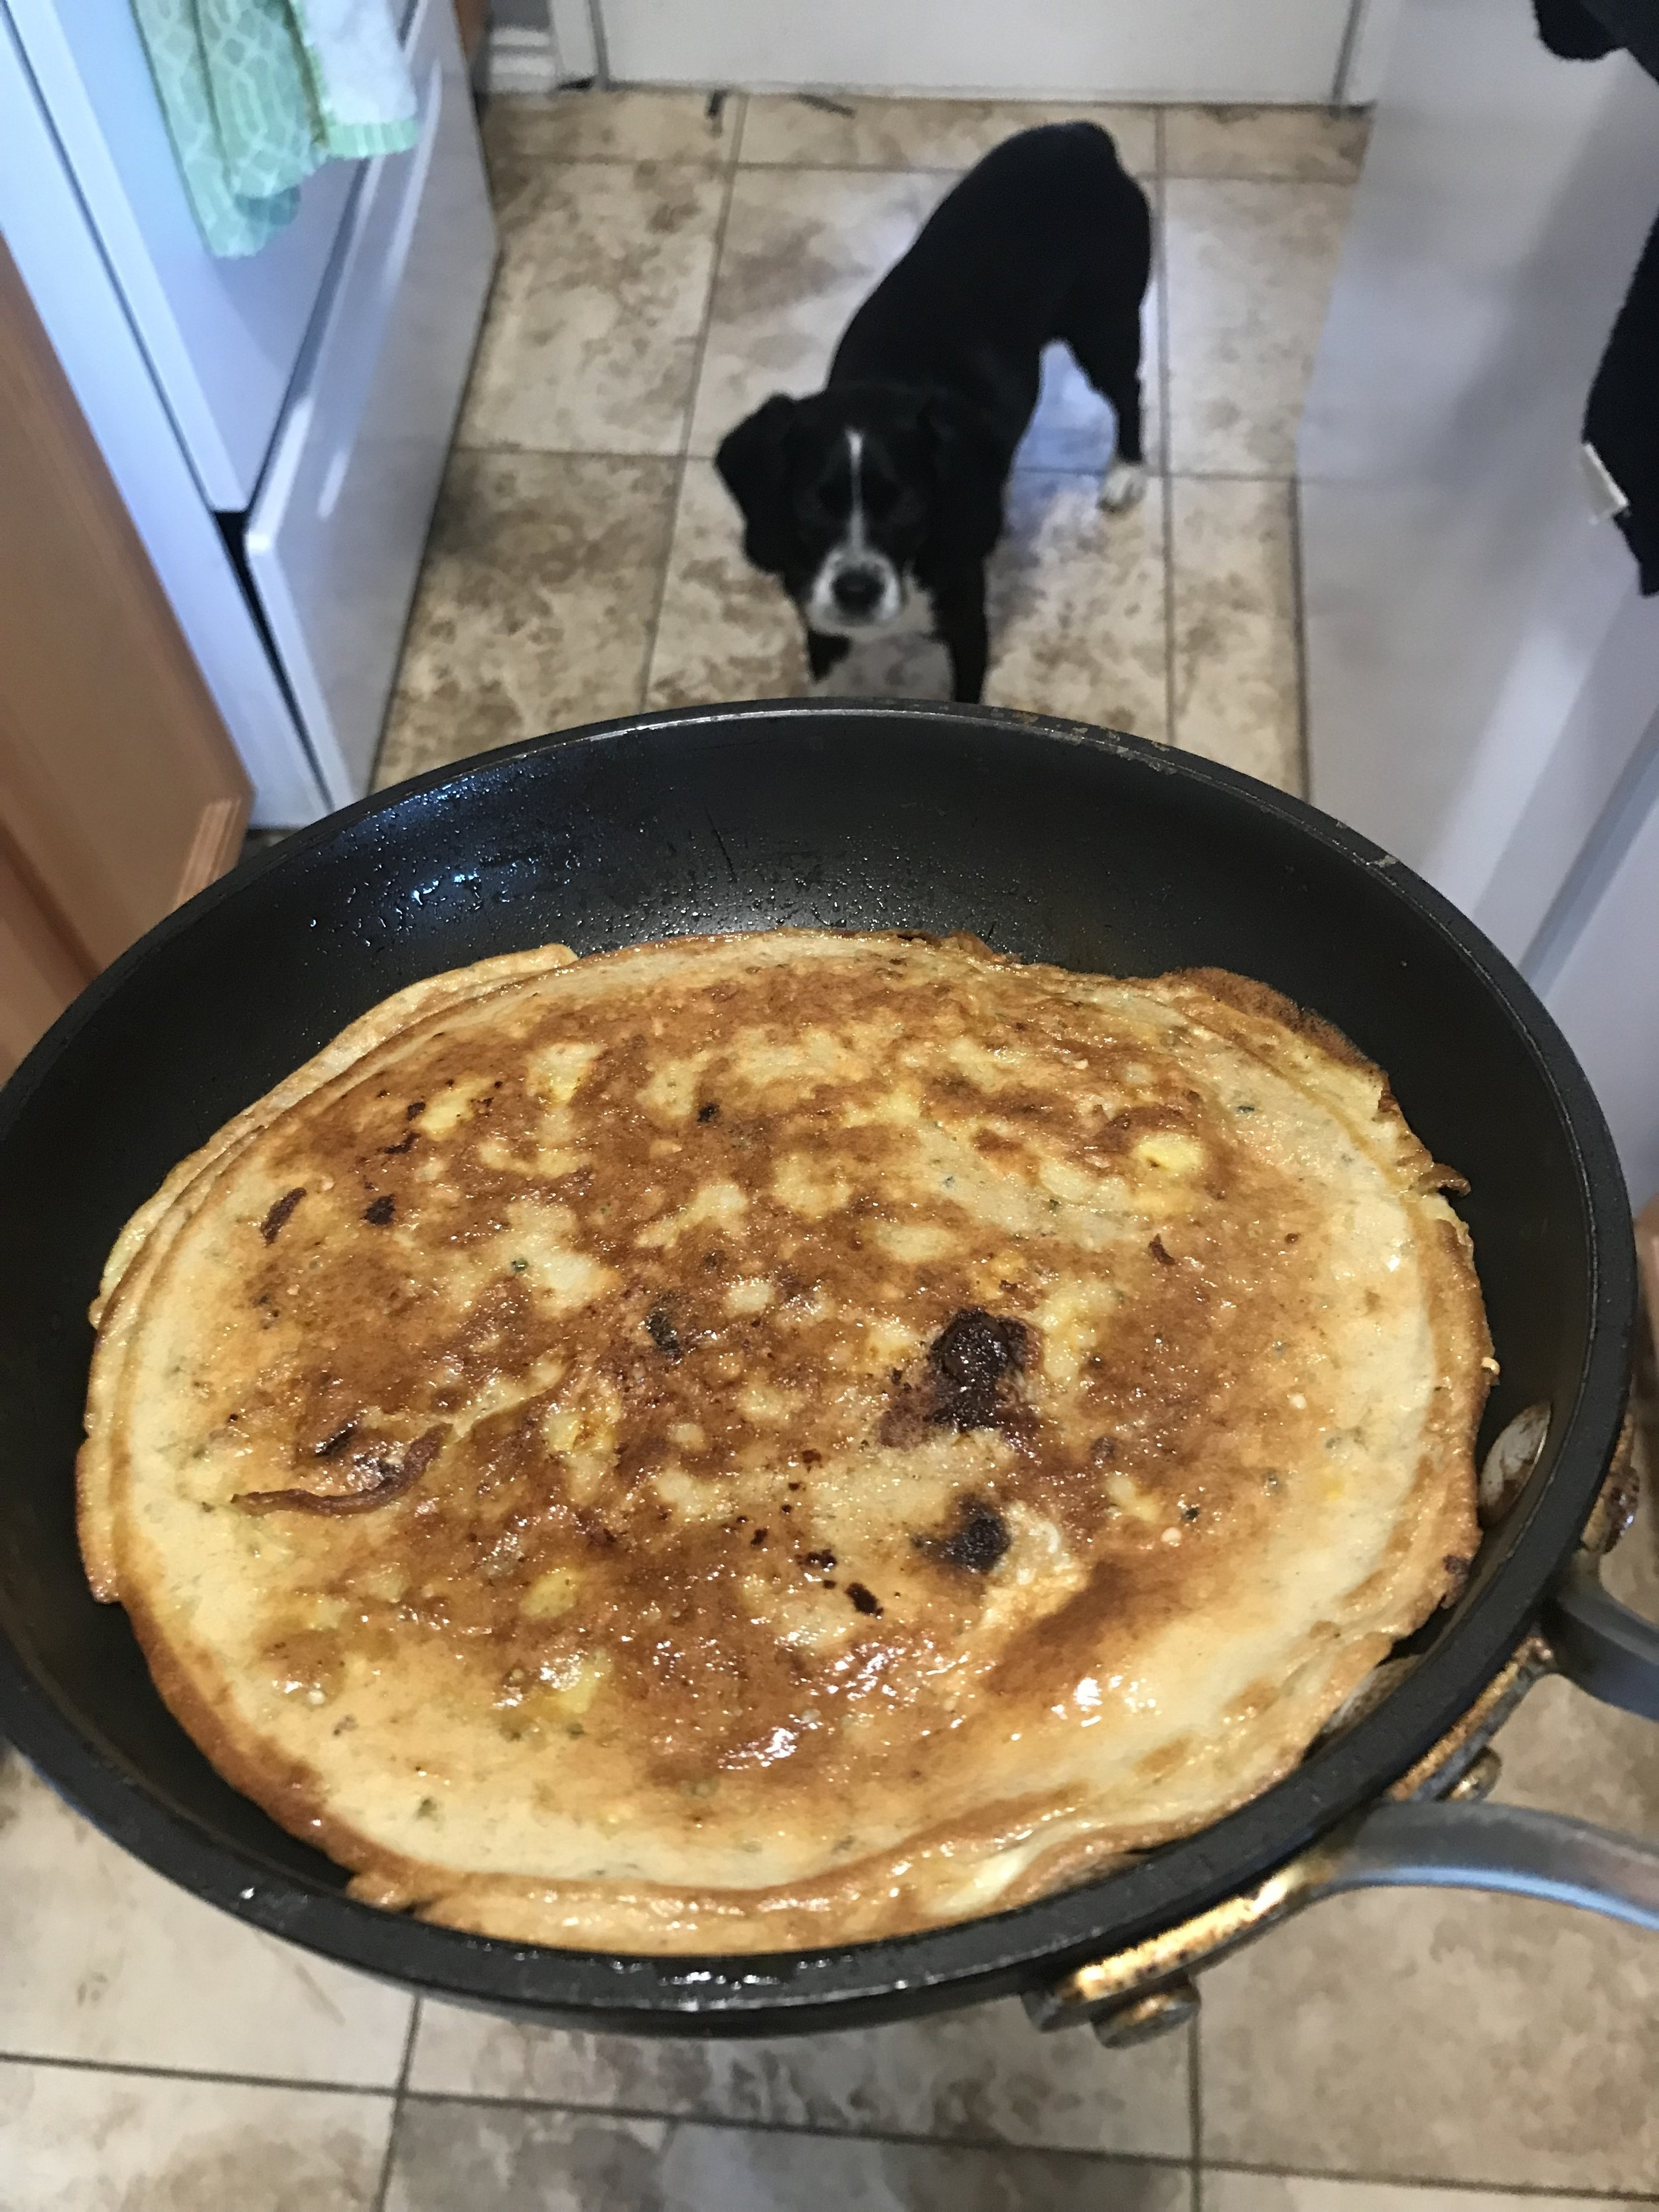 Boone the pup loves protein pancakes too!